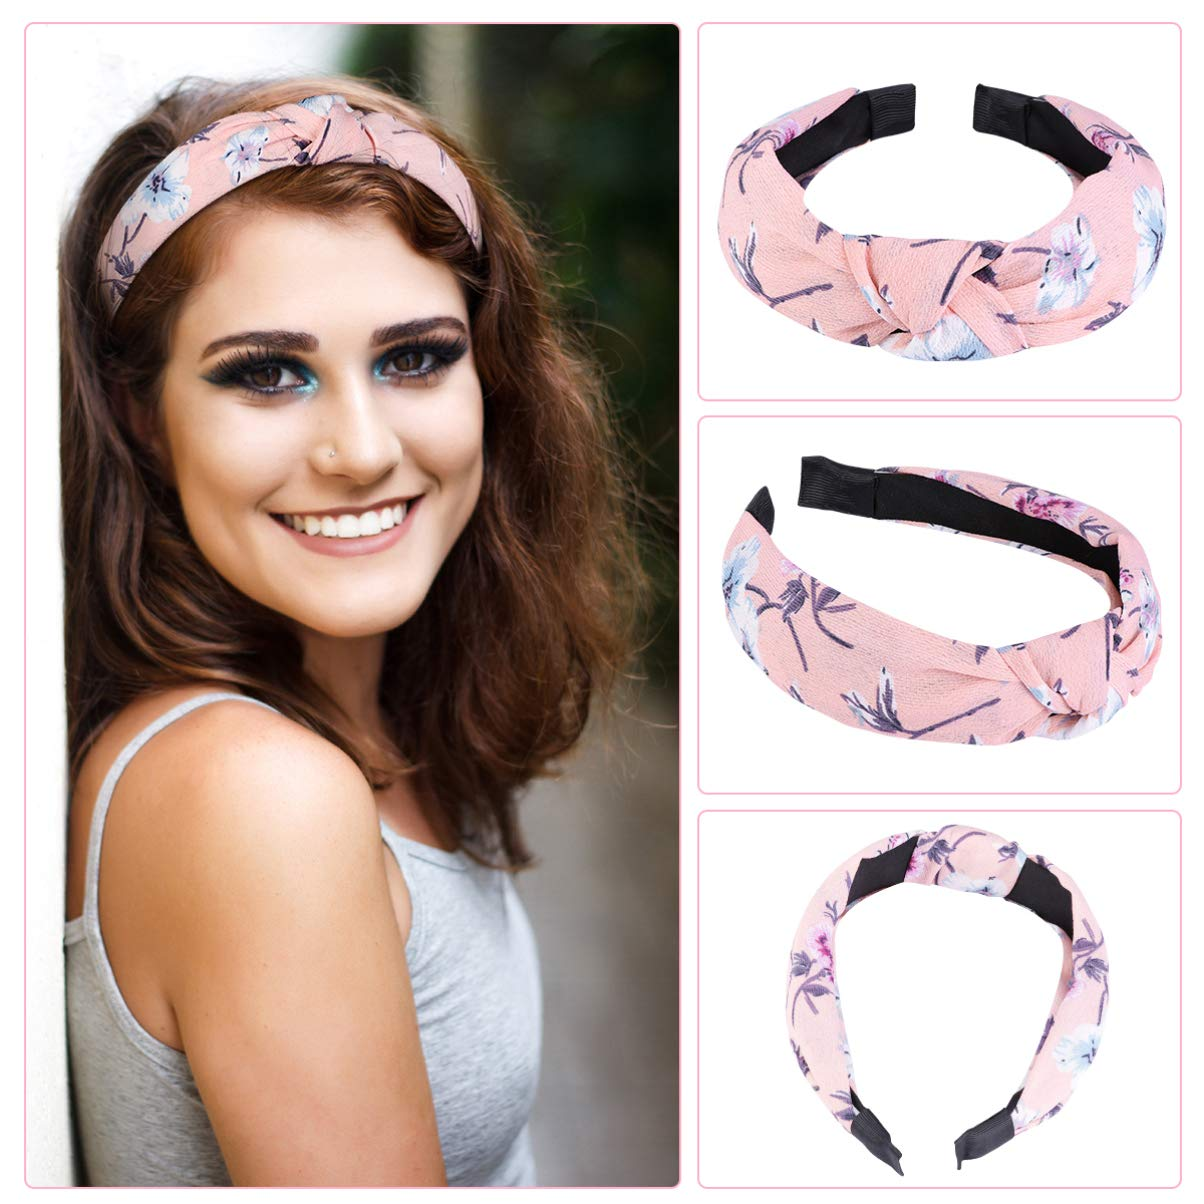 Hair Hoop for Women Girls, Knotted Turban Headbands Hair Hoop Twist Headbands Hair Accessories, 6Pcs